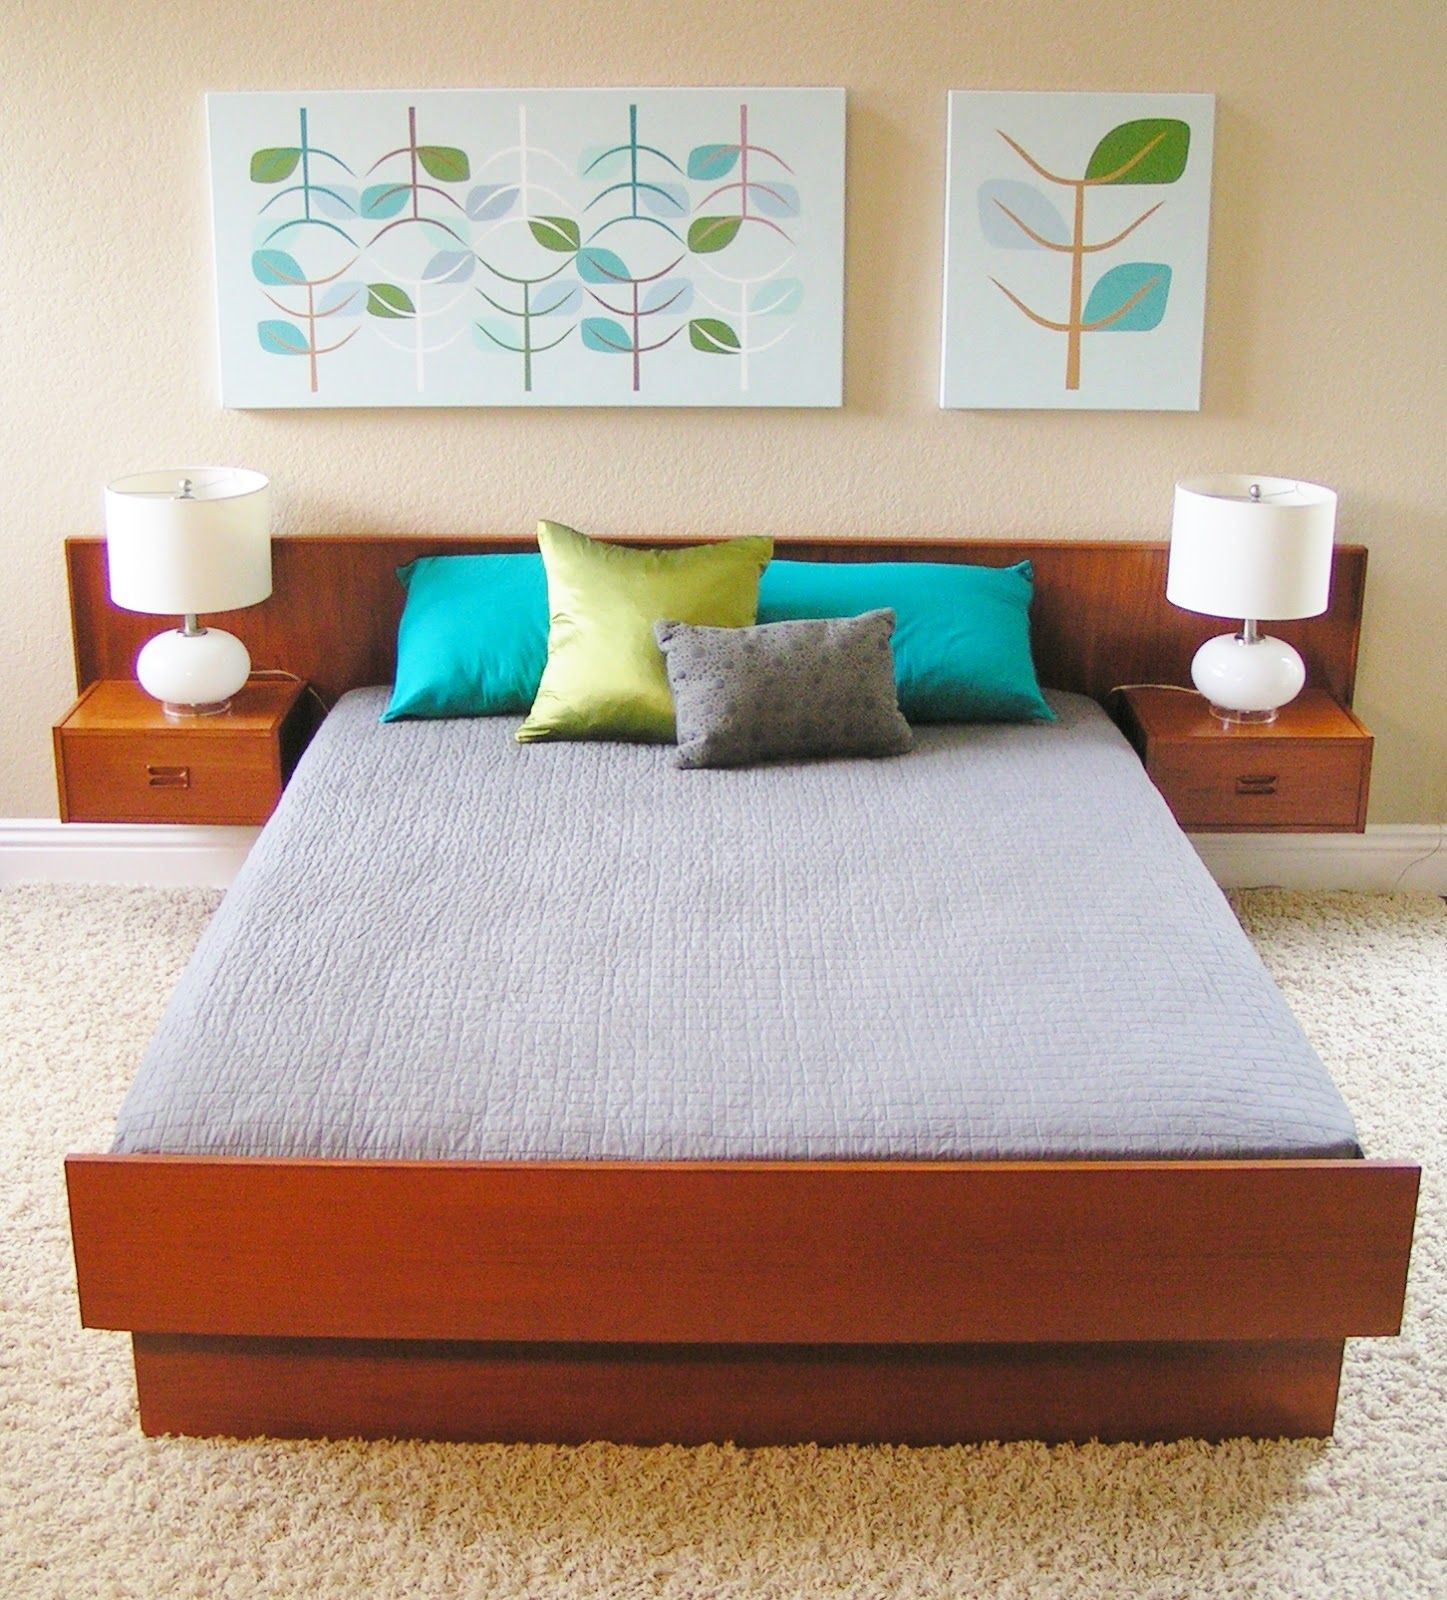 Visit The Bedroom Furniture Reviews And Buy The Intended For Quinn Teak Sofa Chairs (Photo 8 of 25)